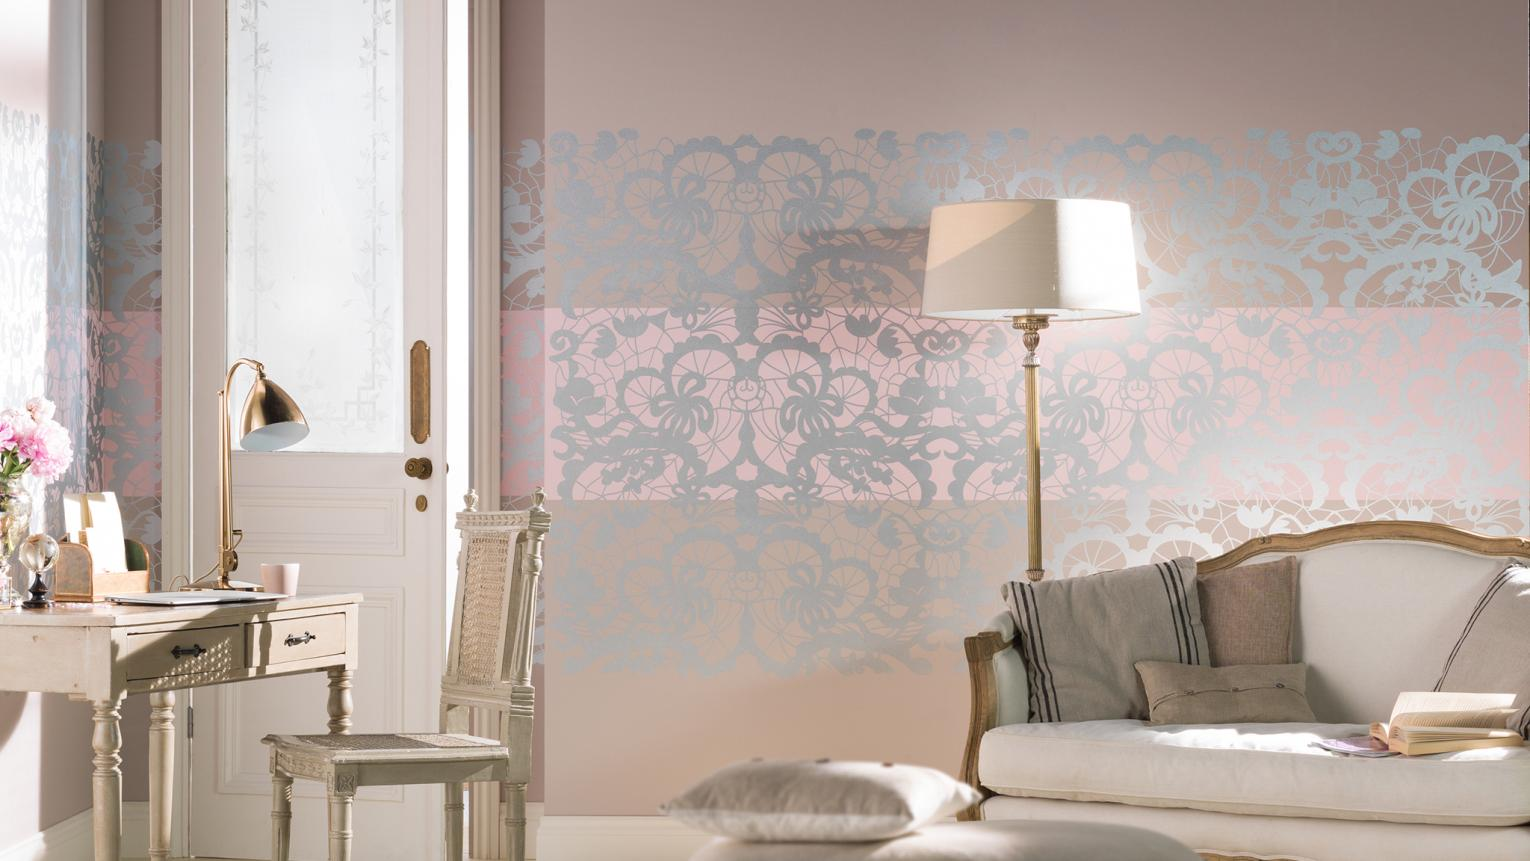 Five bedroom decor ideas to create a romantic retreat using lace stencils, drapes, rich paint colours, luxury fabrics and lighting.